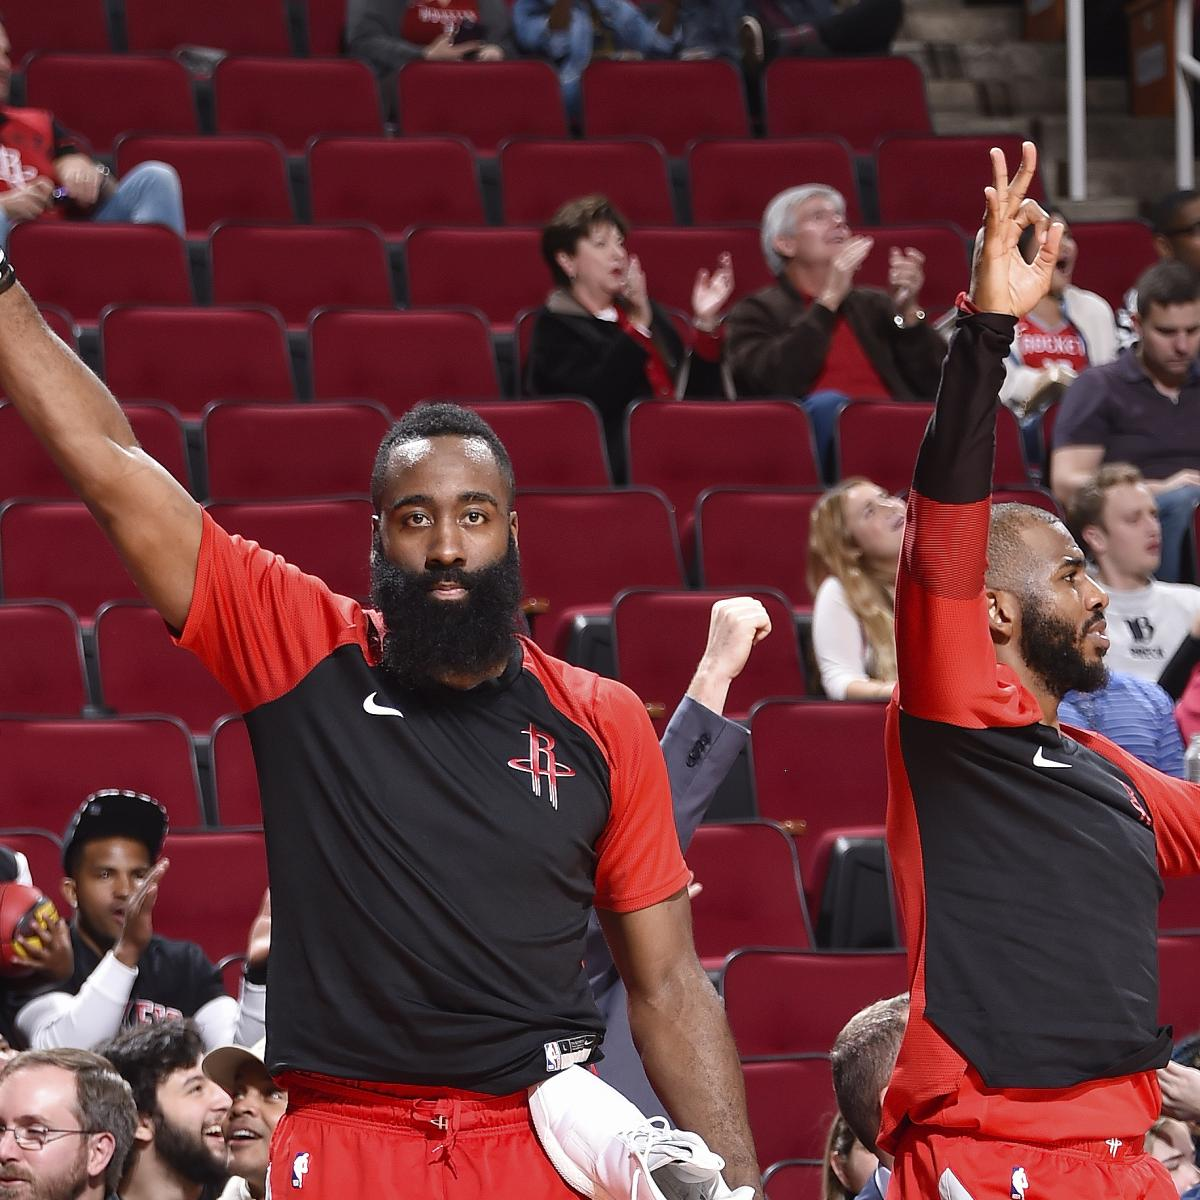 Houston Rockets Game Log: Houston Rockets Set NBA Record With 26 3-Pointers In A